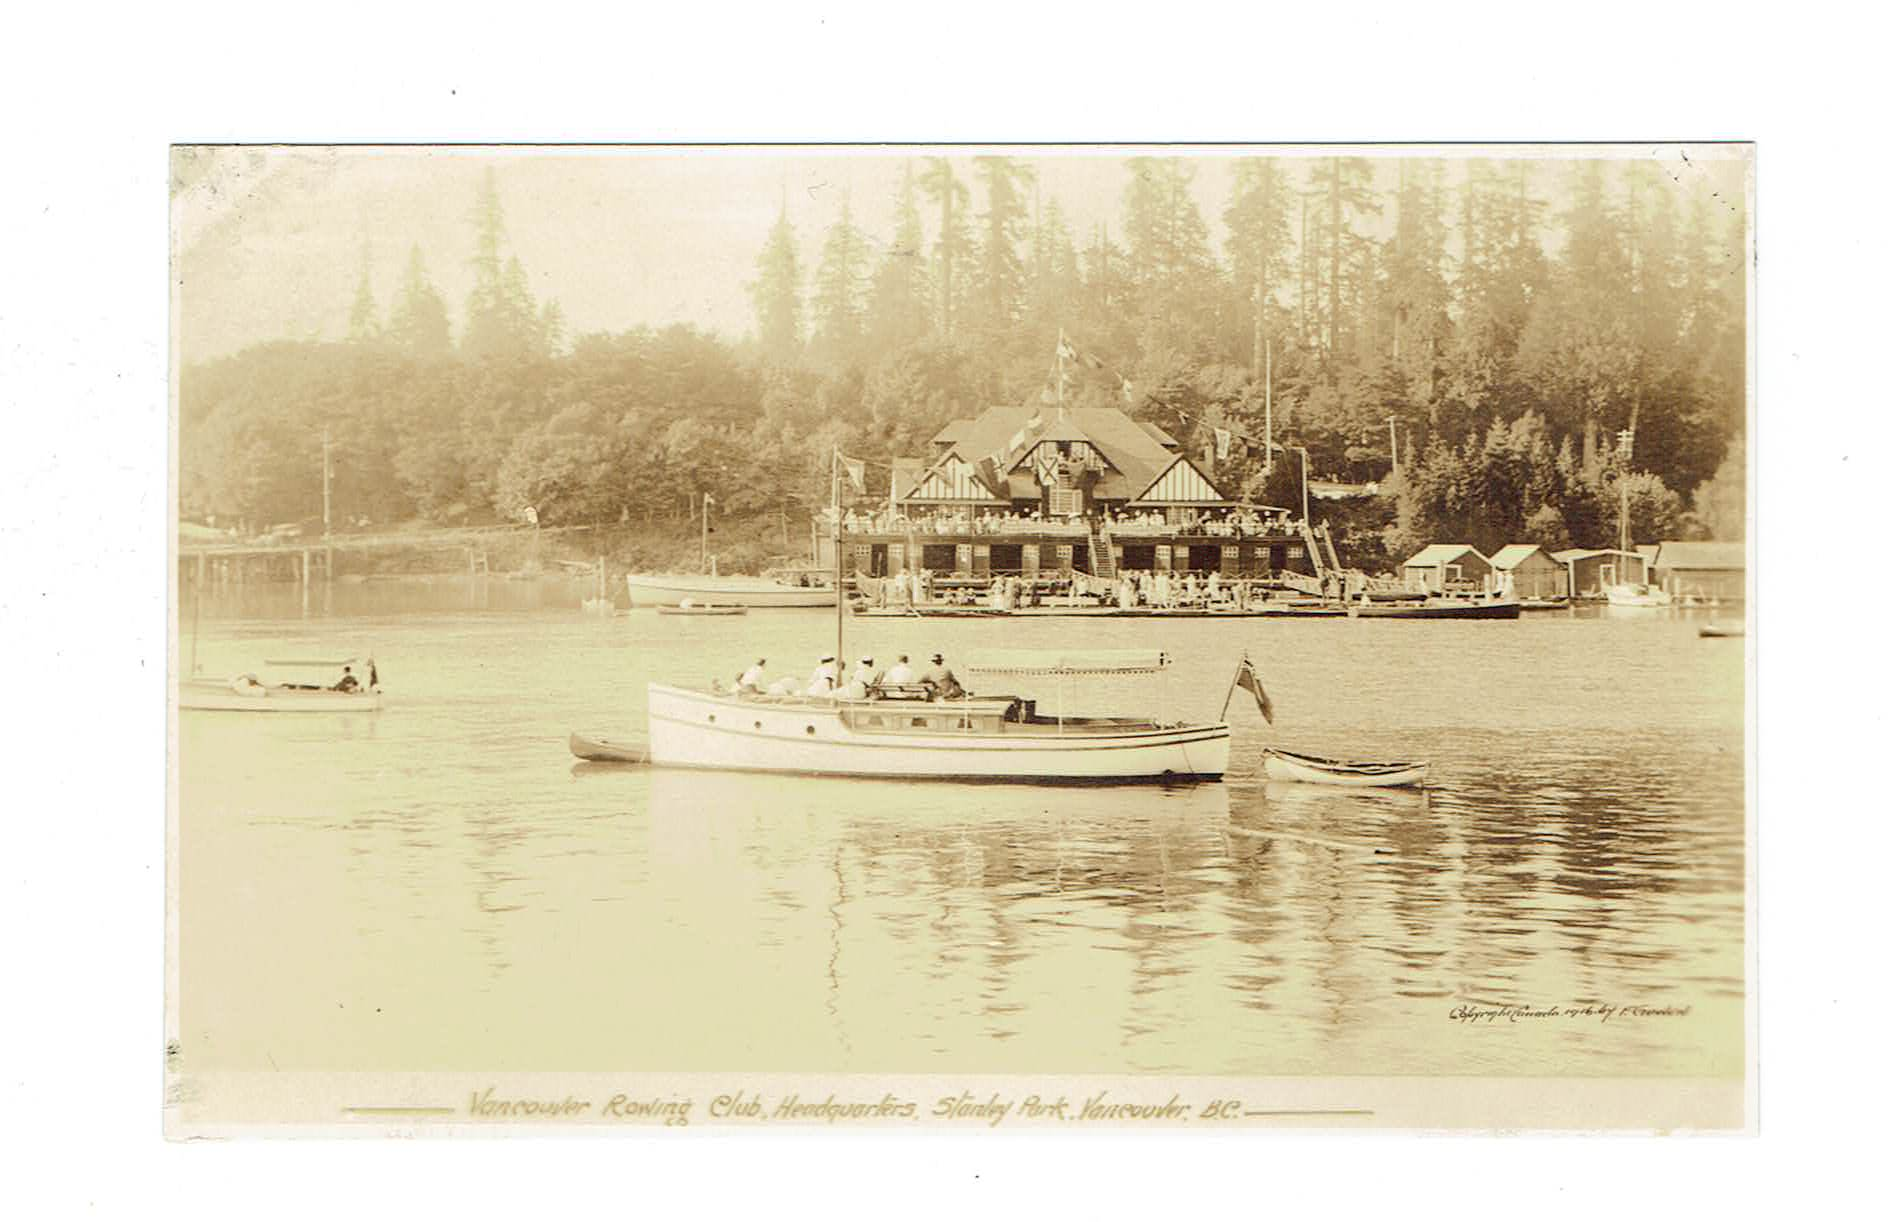 VANCOUVER BC. RPPC ROWING CLUB HEADQUARTERS STANLEY PARK CANADA